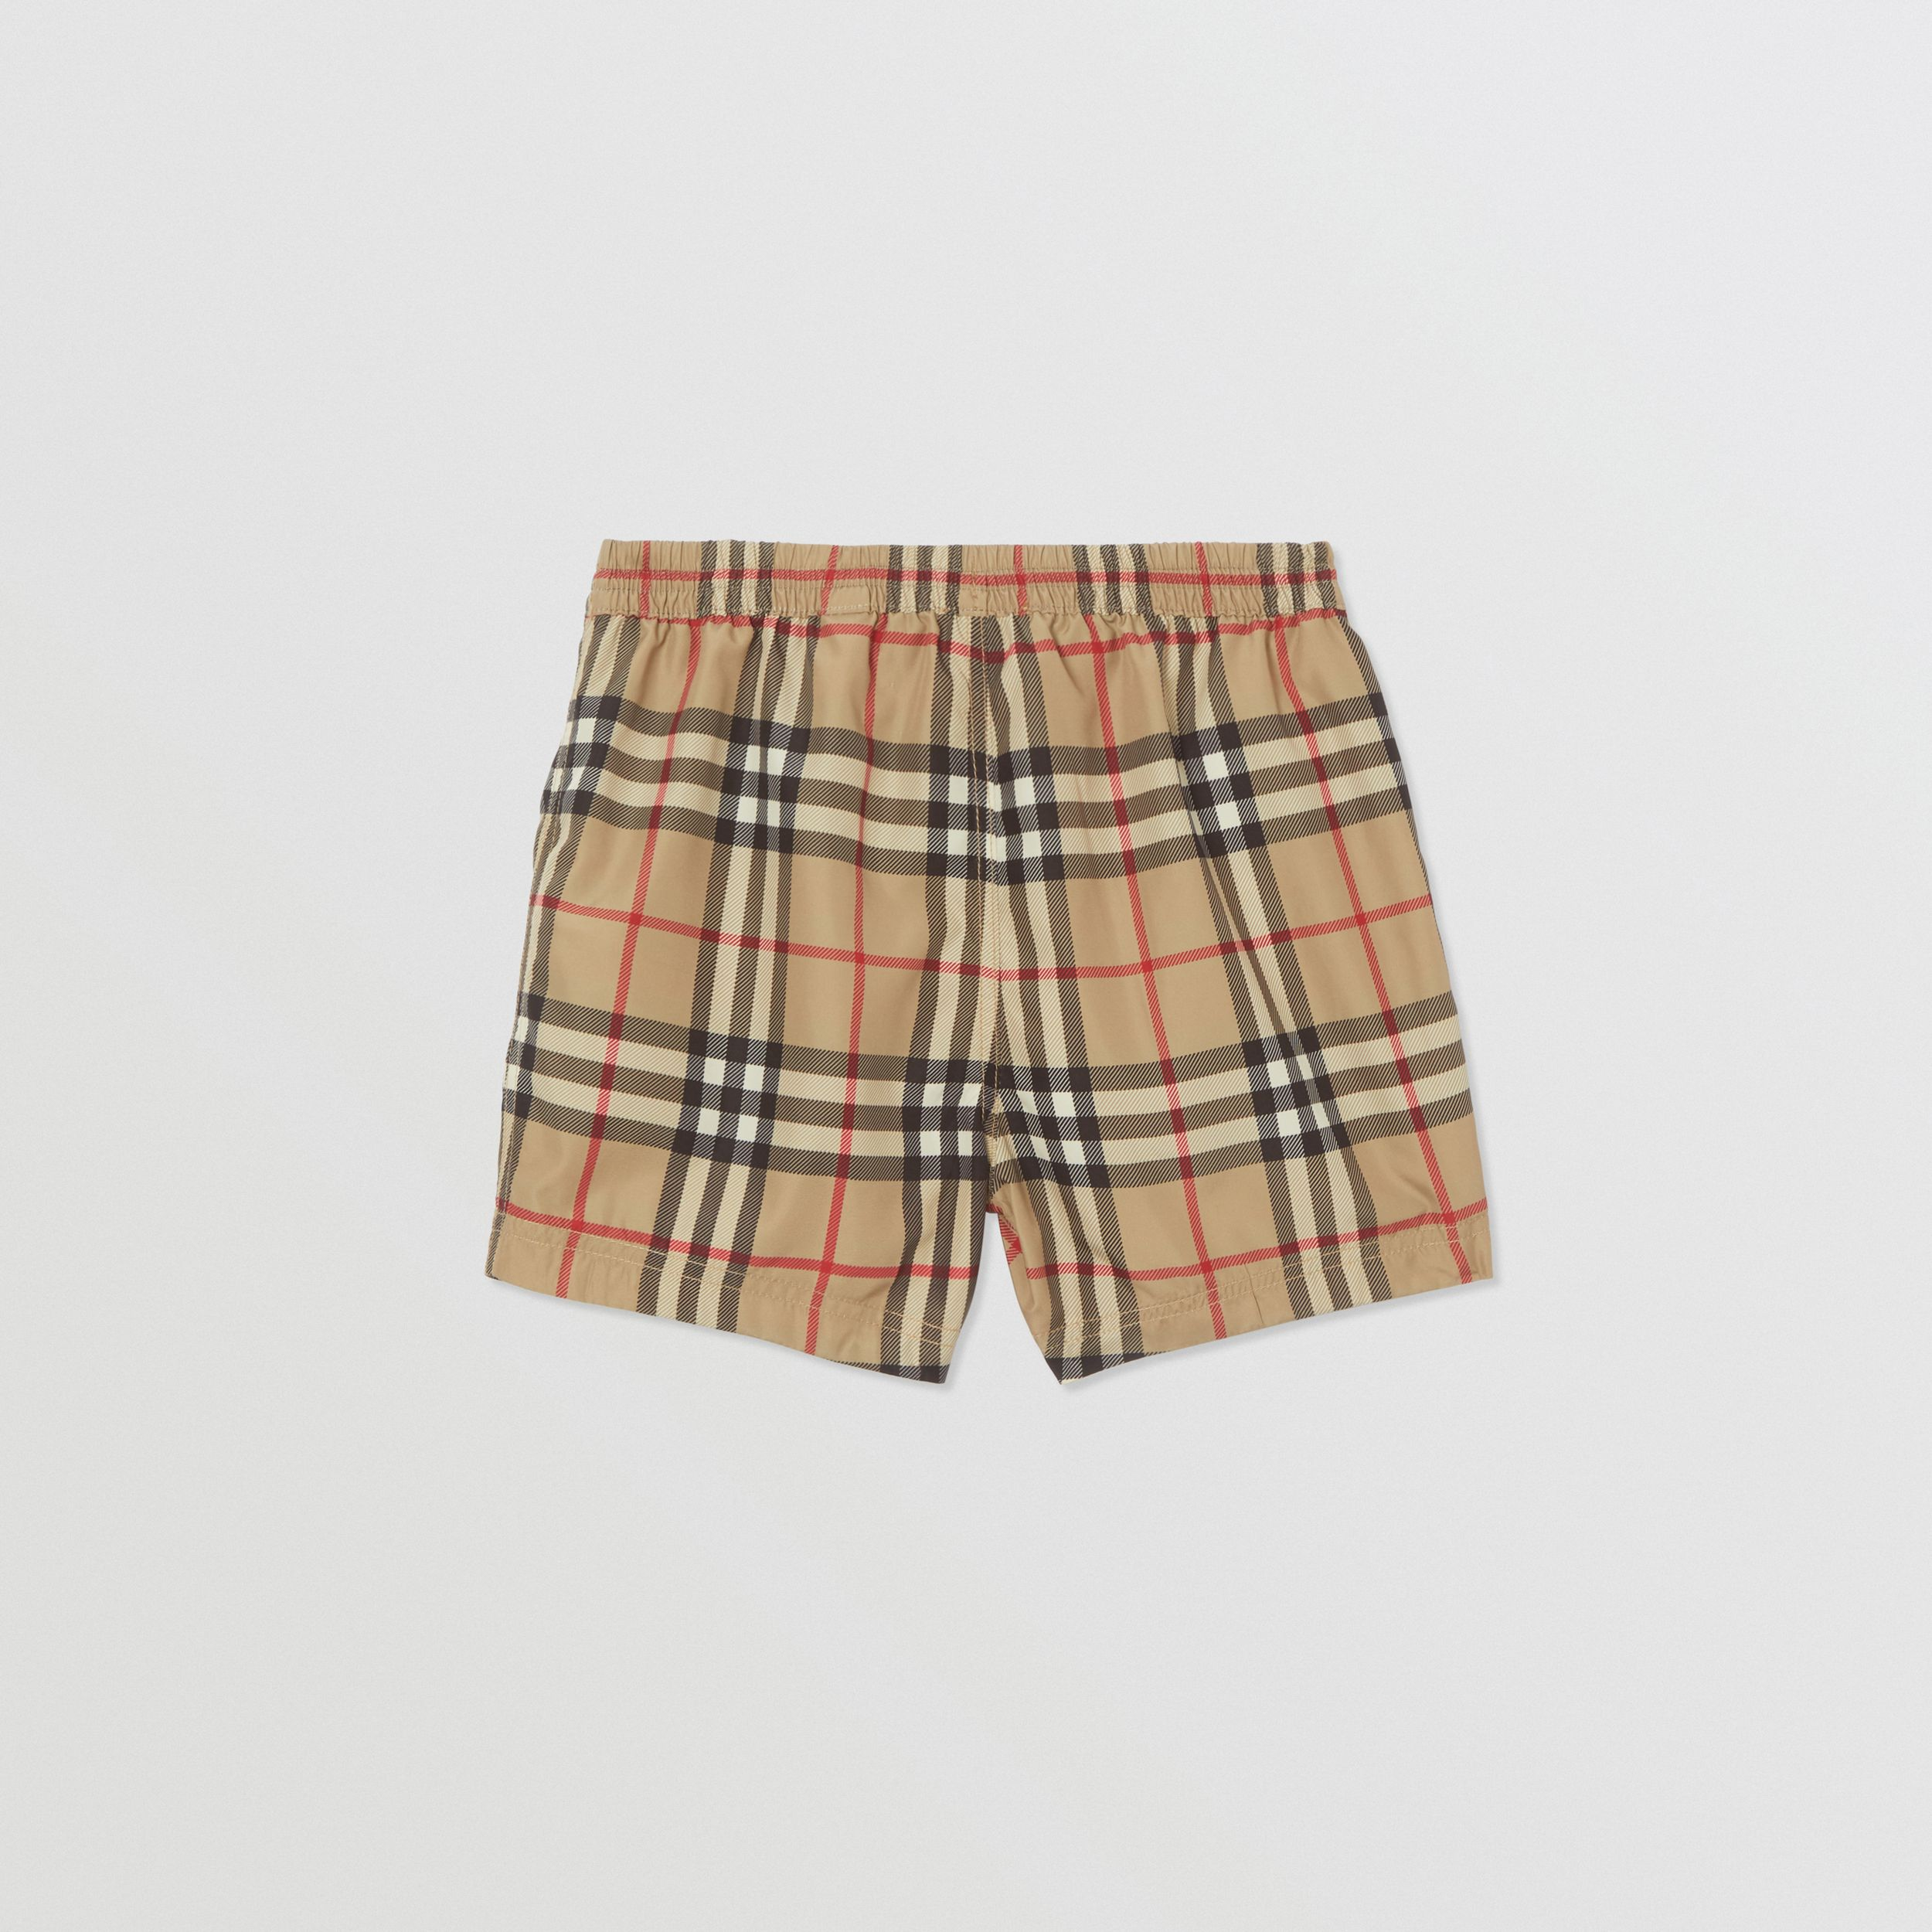 Logo Appliqué Vintage Check Swim Shorts in Archive Beige - Children | Burberry - 4